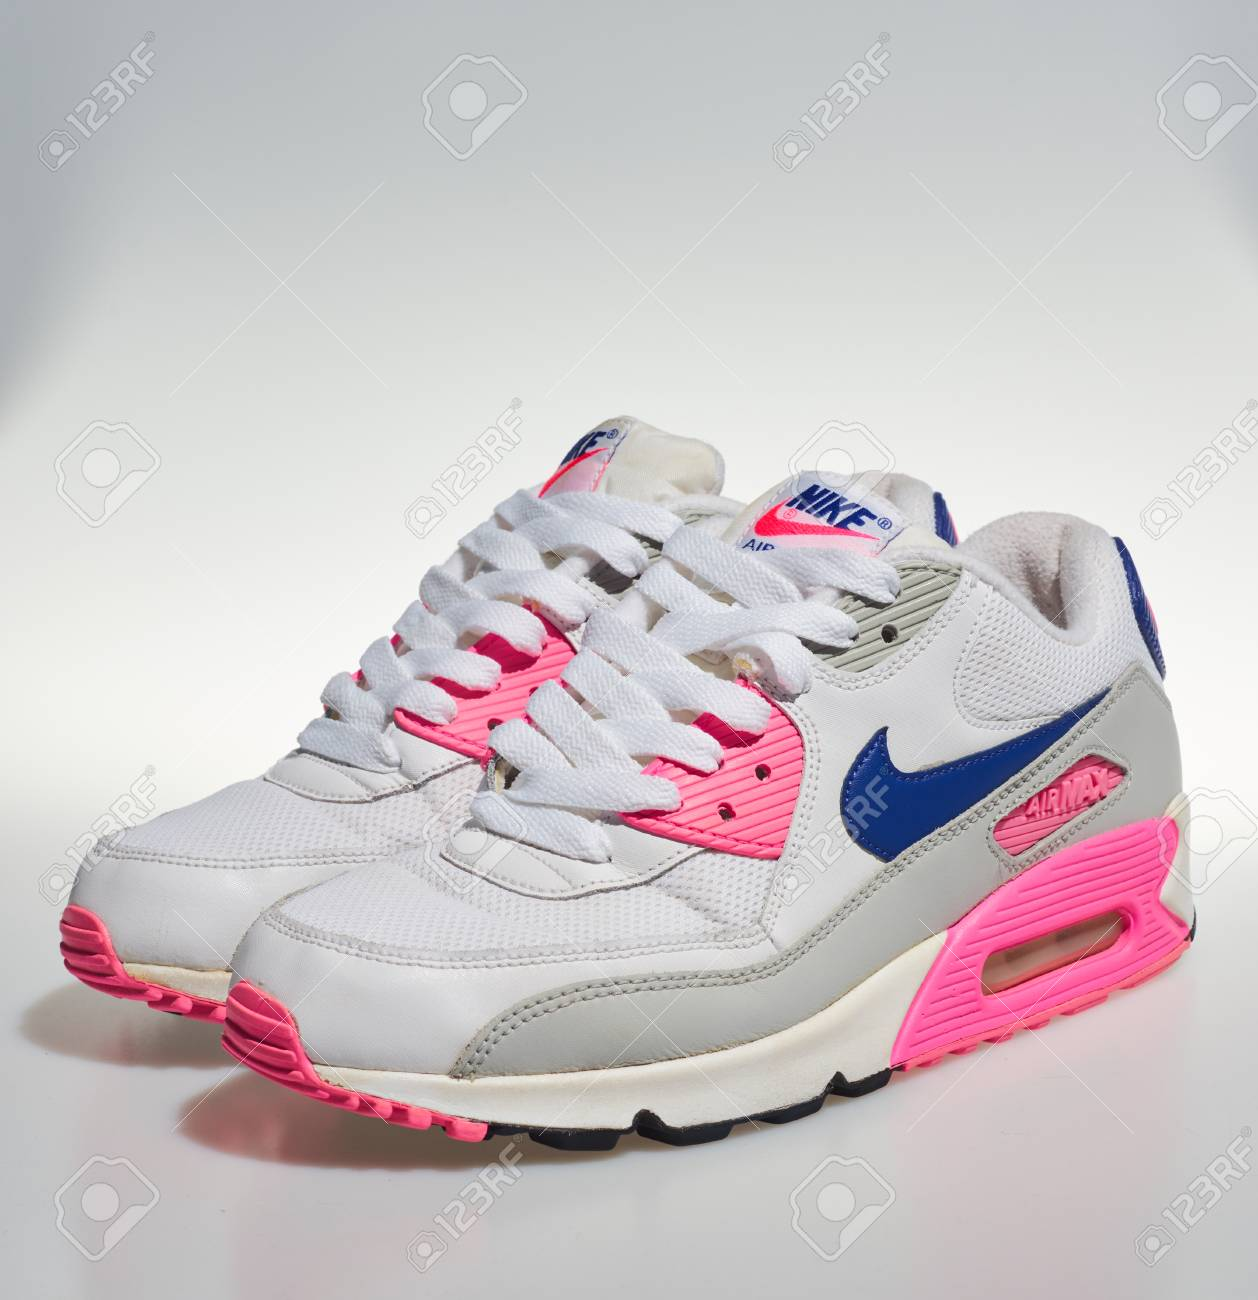 reemplazar Curso de colisión banda  nike air max classic white Online Shopping for Women, Men, Kids Fashion &  Lifestyle|Free Delivery & Returns